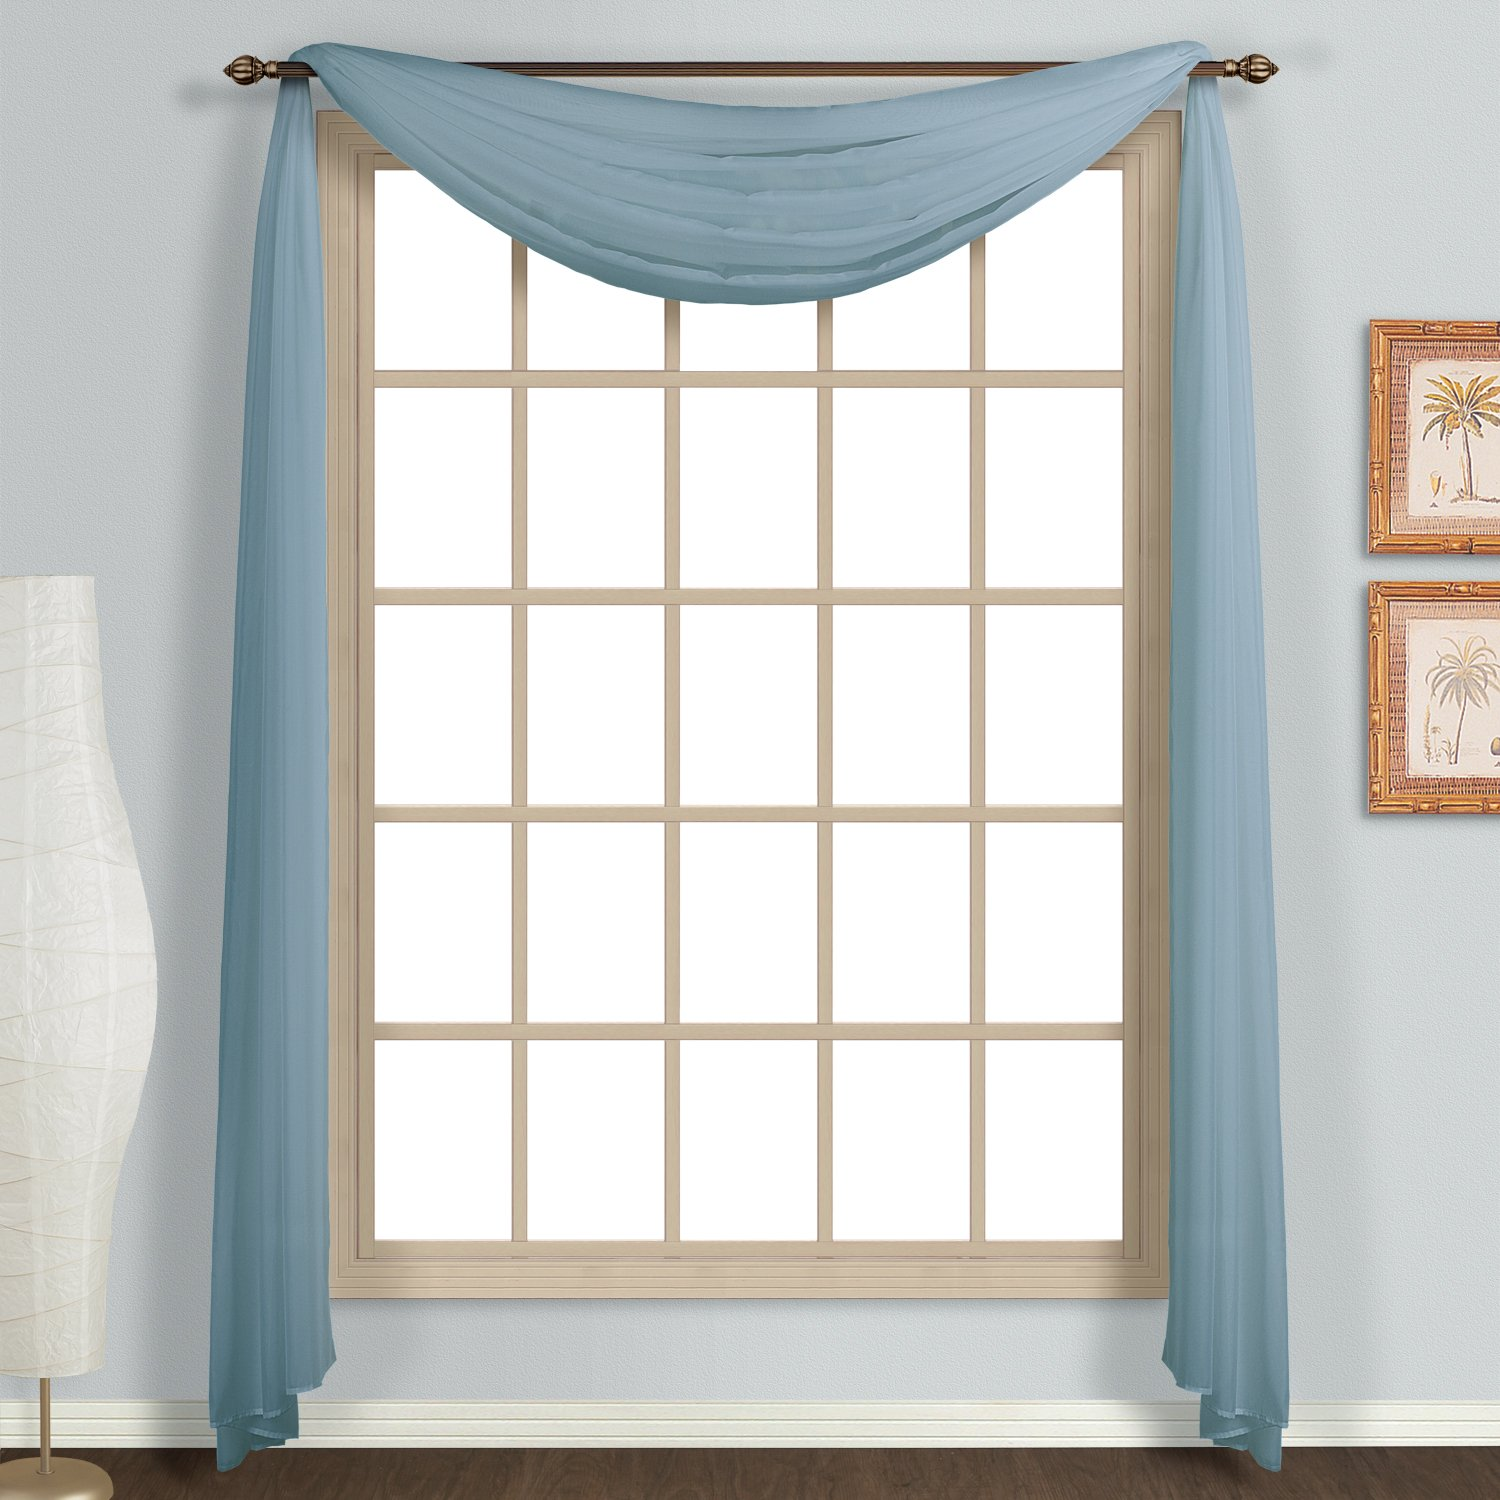 youll window black white valance love kitchen room swags curtains and swag toppers cute valances dining country brown blue